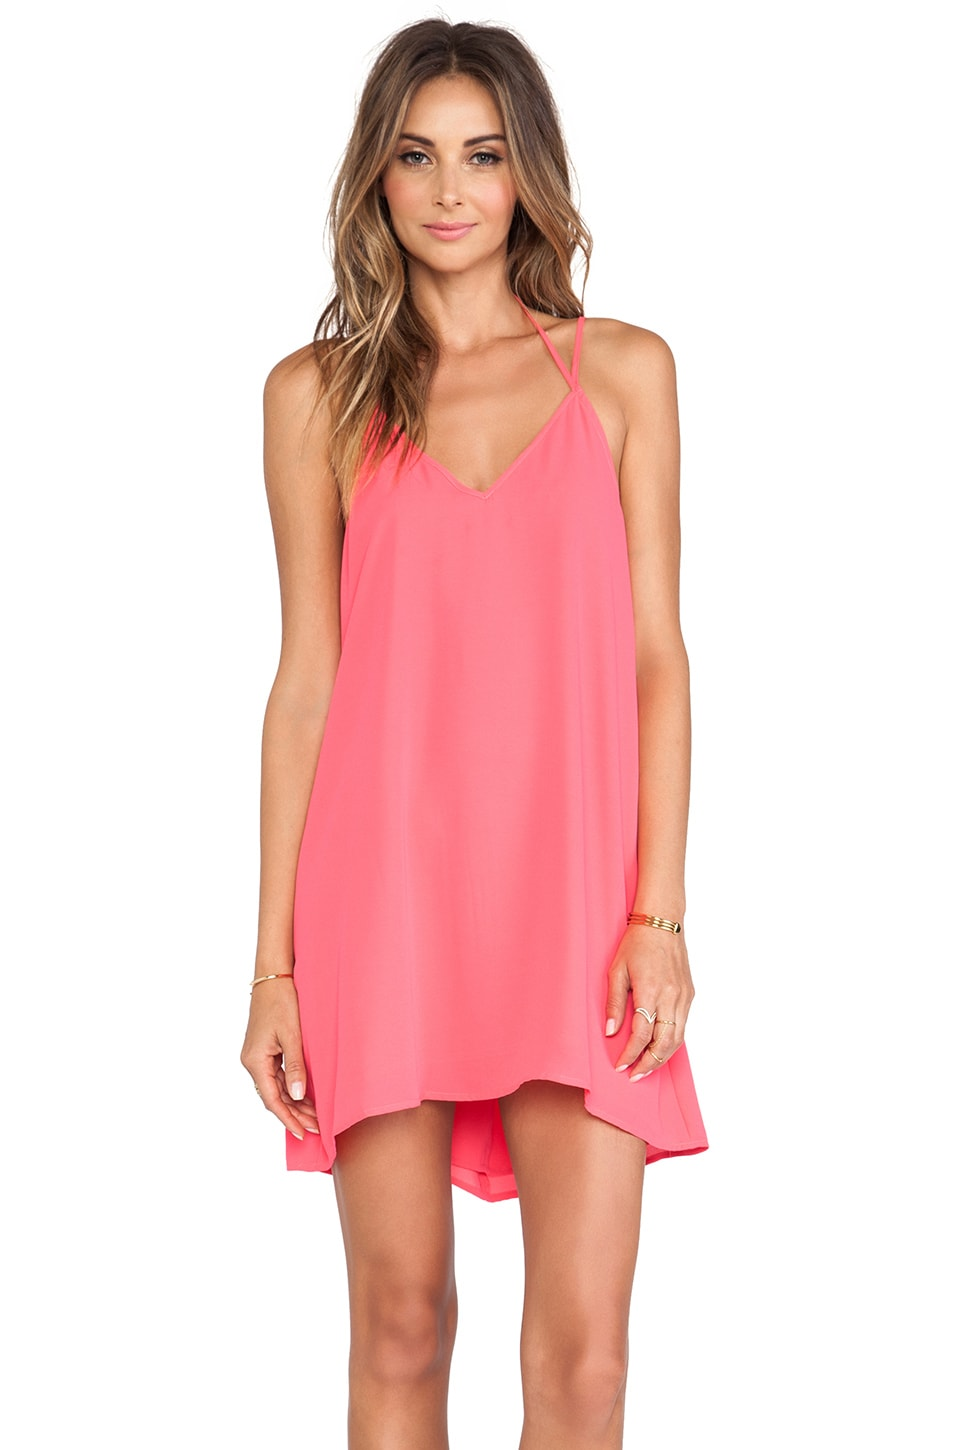 Feel the Piece Fiona Cami Dress in Strawberry Pink